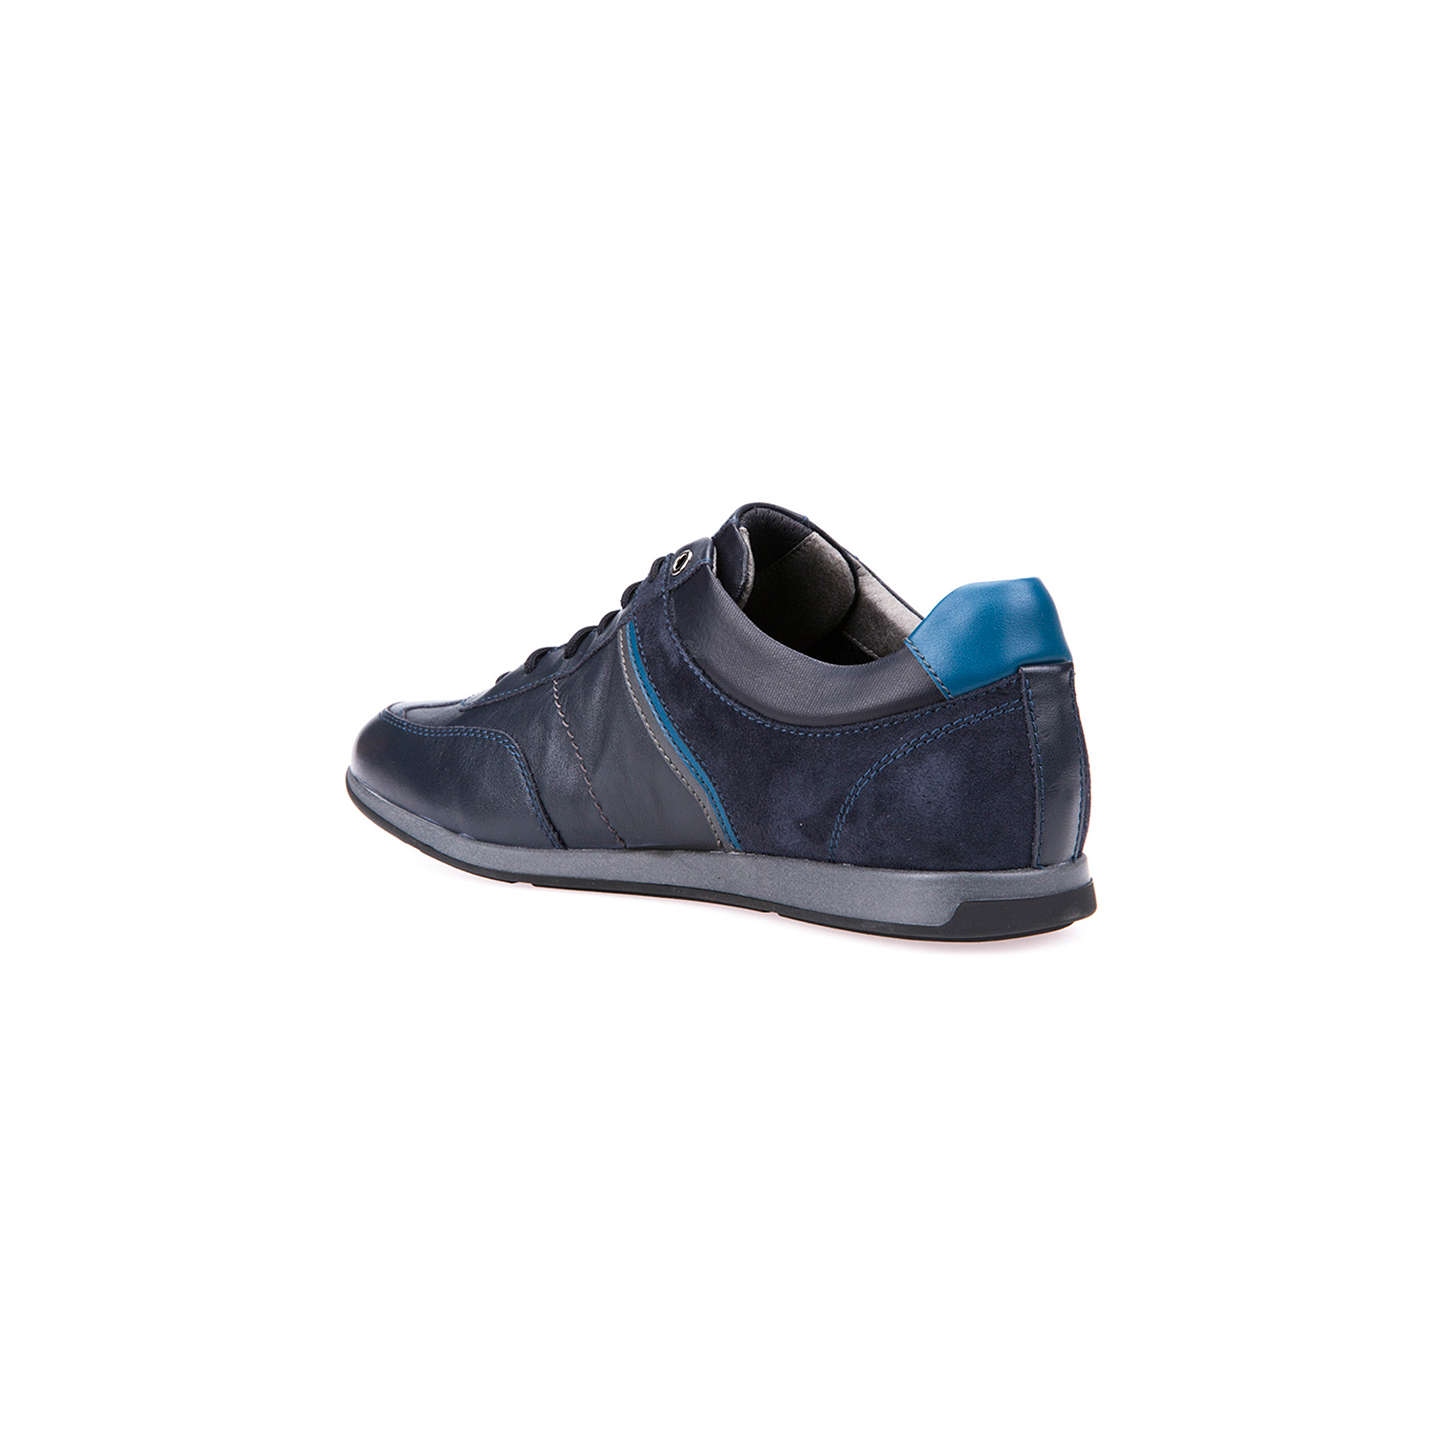 BuyGeox Clemet Trainers, Navy, 7 Online at johnlewis.com